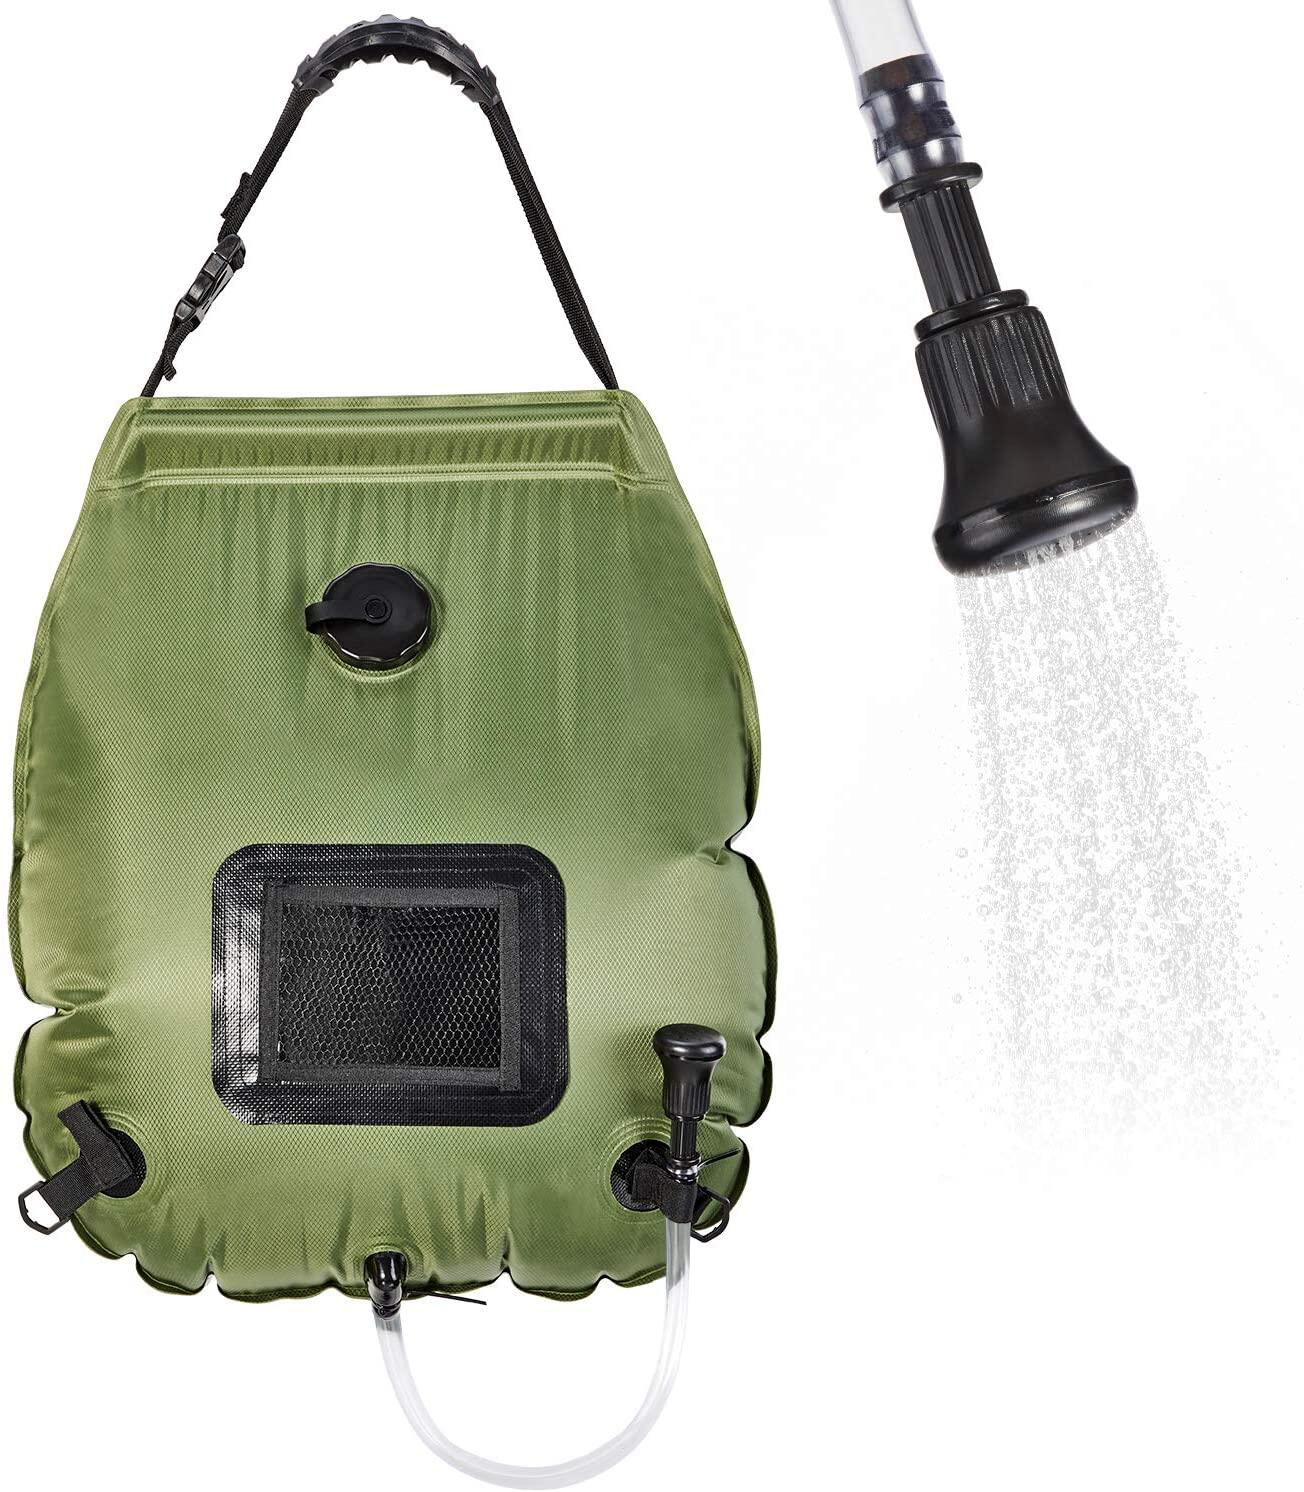 Solar Shower Bag 5 Gallons for Camping Beach Swimming